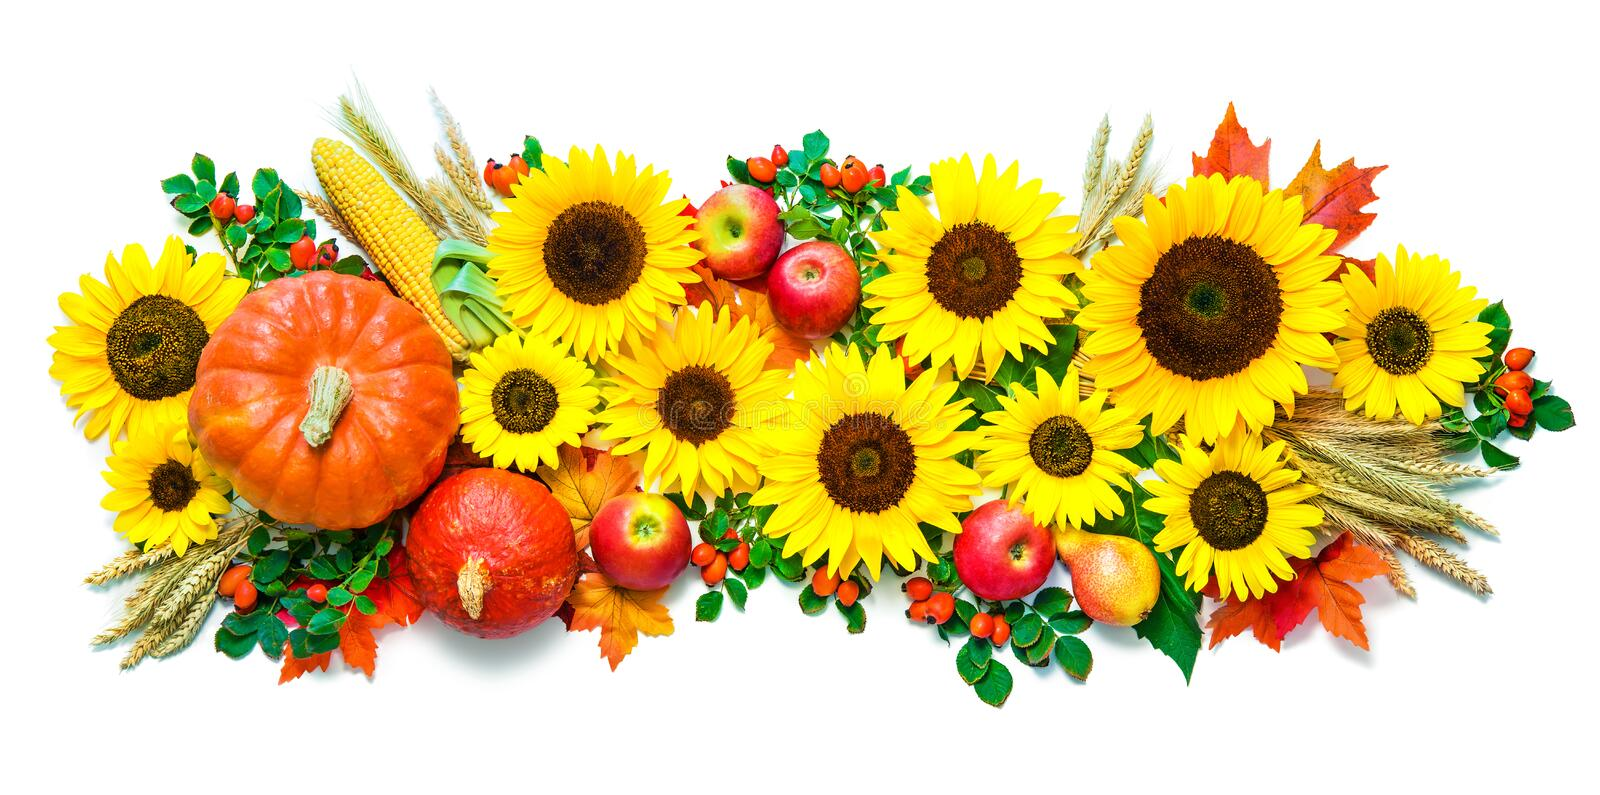 Autumn or Thanksgiving background with sunflowers, pumpkins, app royalty free stock image